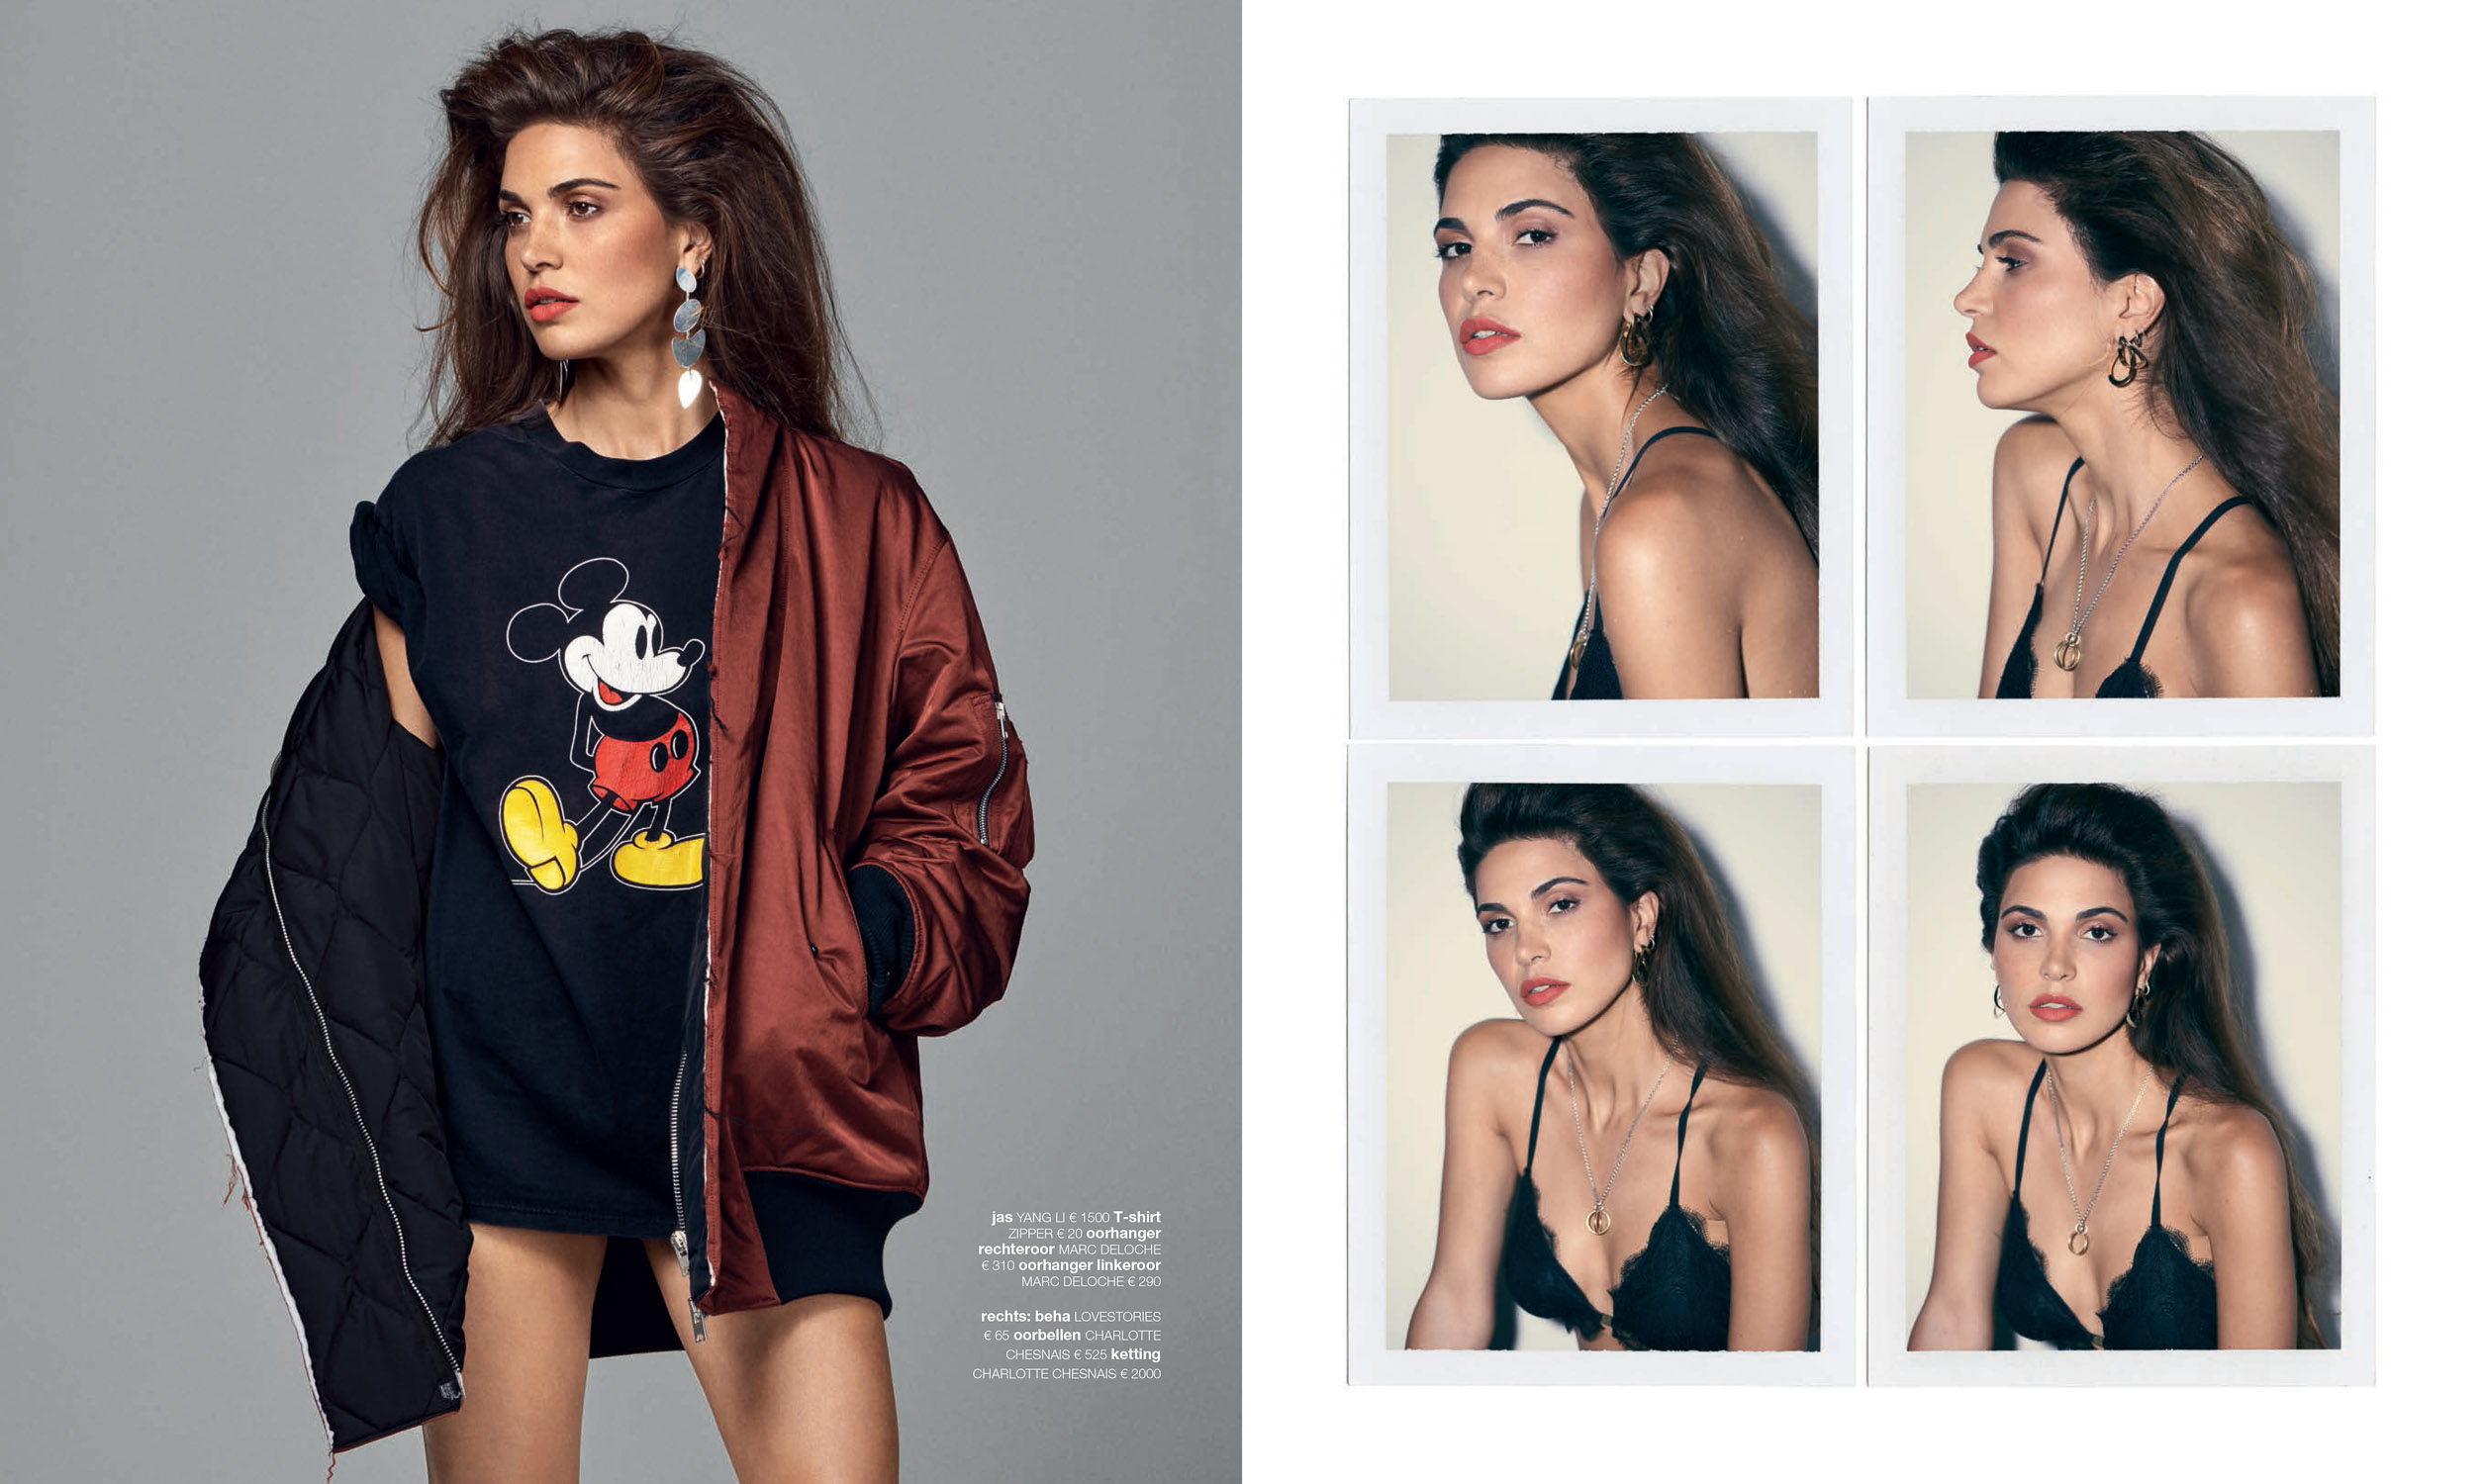 Negin Mirsalehi for LINDA by Marc de Groot